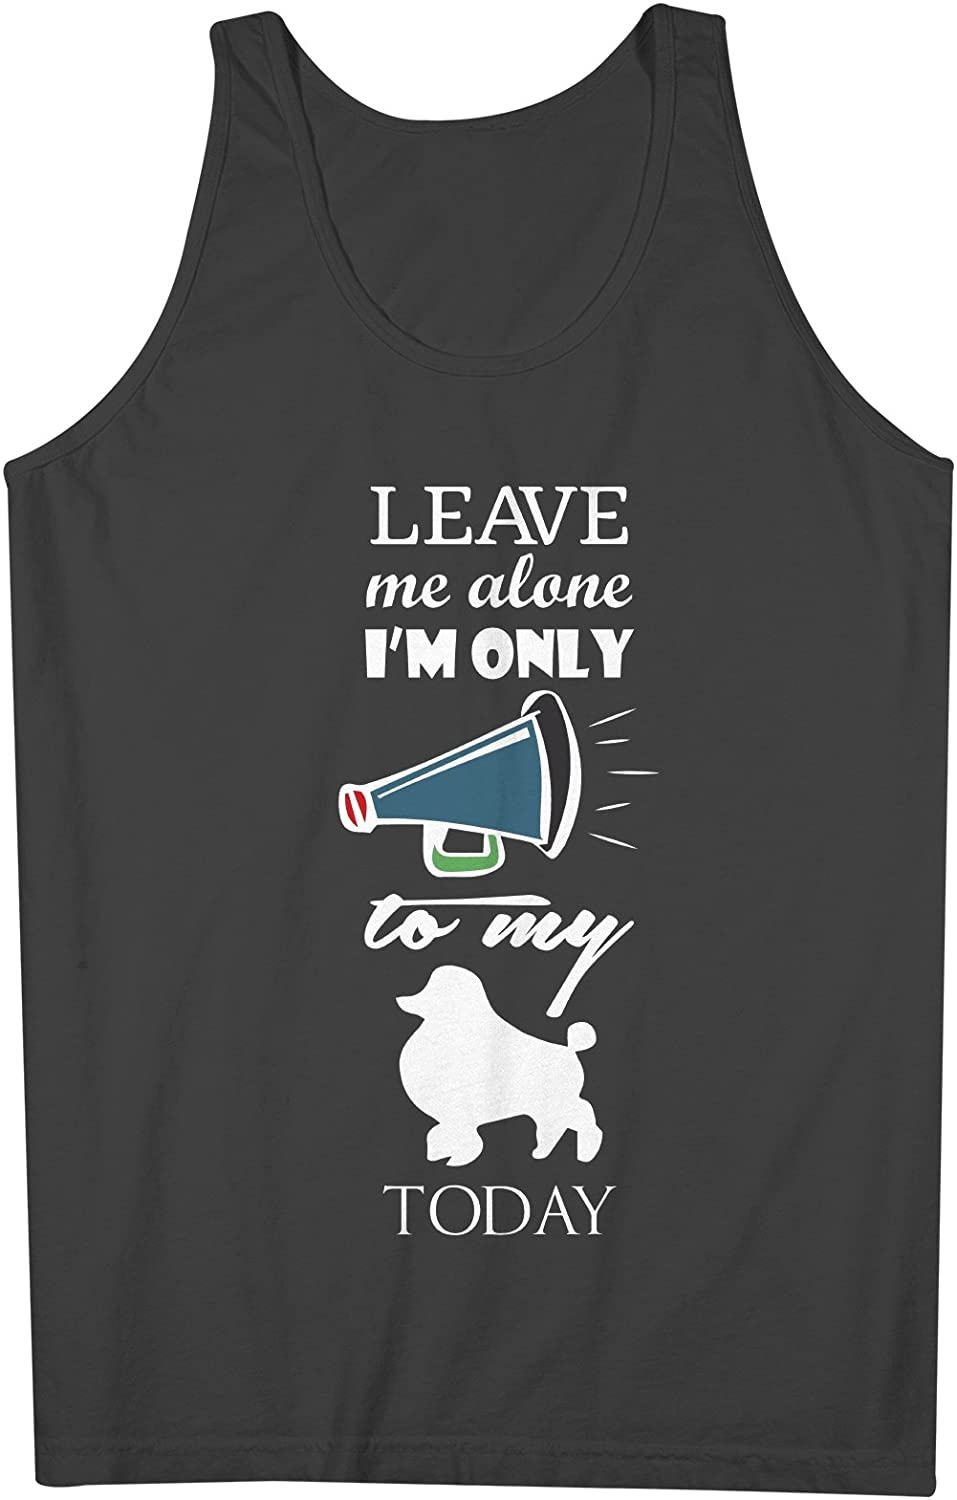 Leave Me Alone I'm Only Talking To My 犬s Today 男性用 Tank Top Sleeveless Shirt